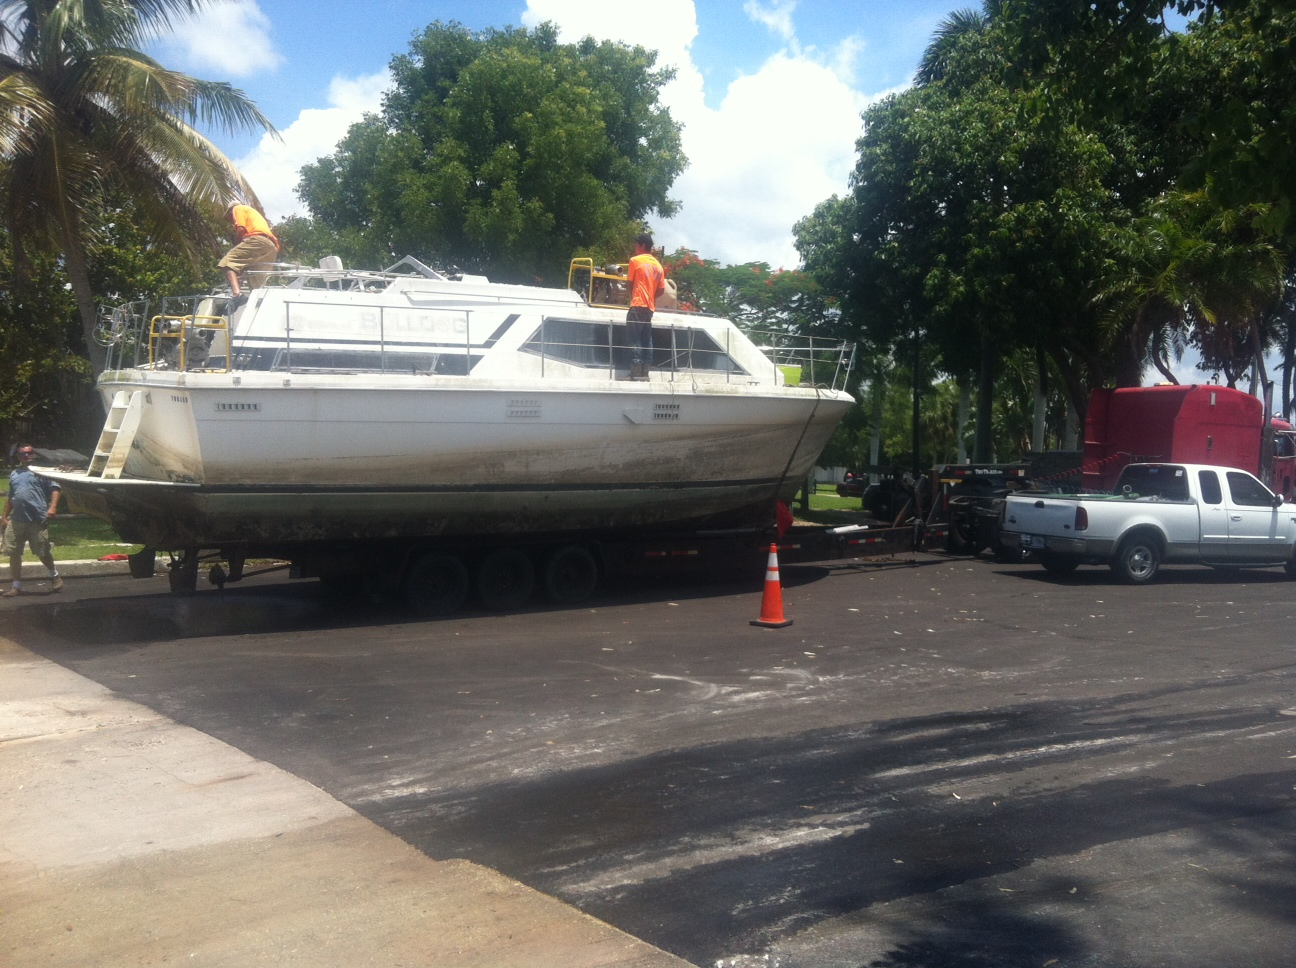 """PHOTO: The derelict vessel """"Bulldog"""" was removed from a canal in the 1100 block of Lucerne Avenue Tuesday afternoon, thanks to the cooperation of several local, state, and federal agencies. (Photo Courtesy of Cape Coral Police Department)"""